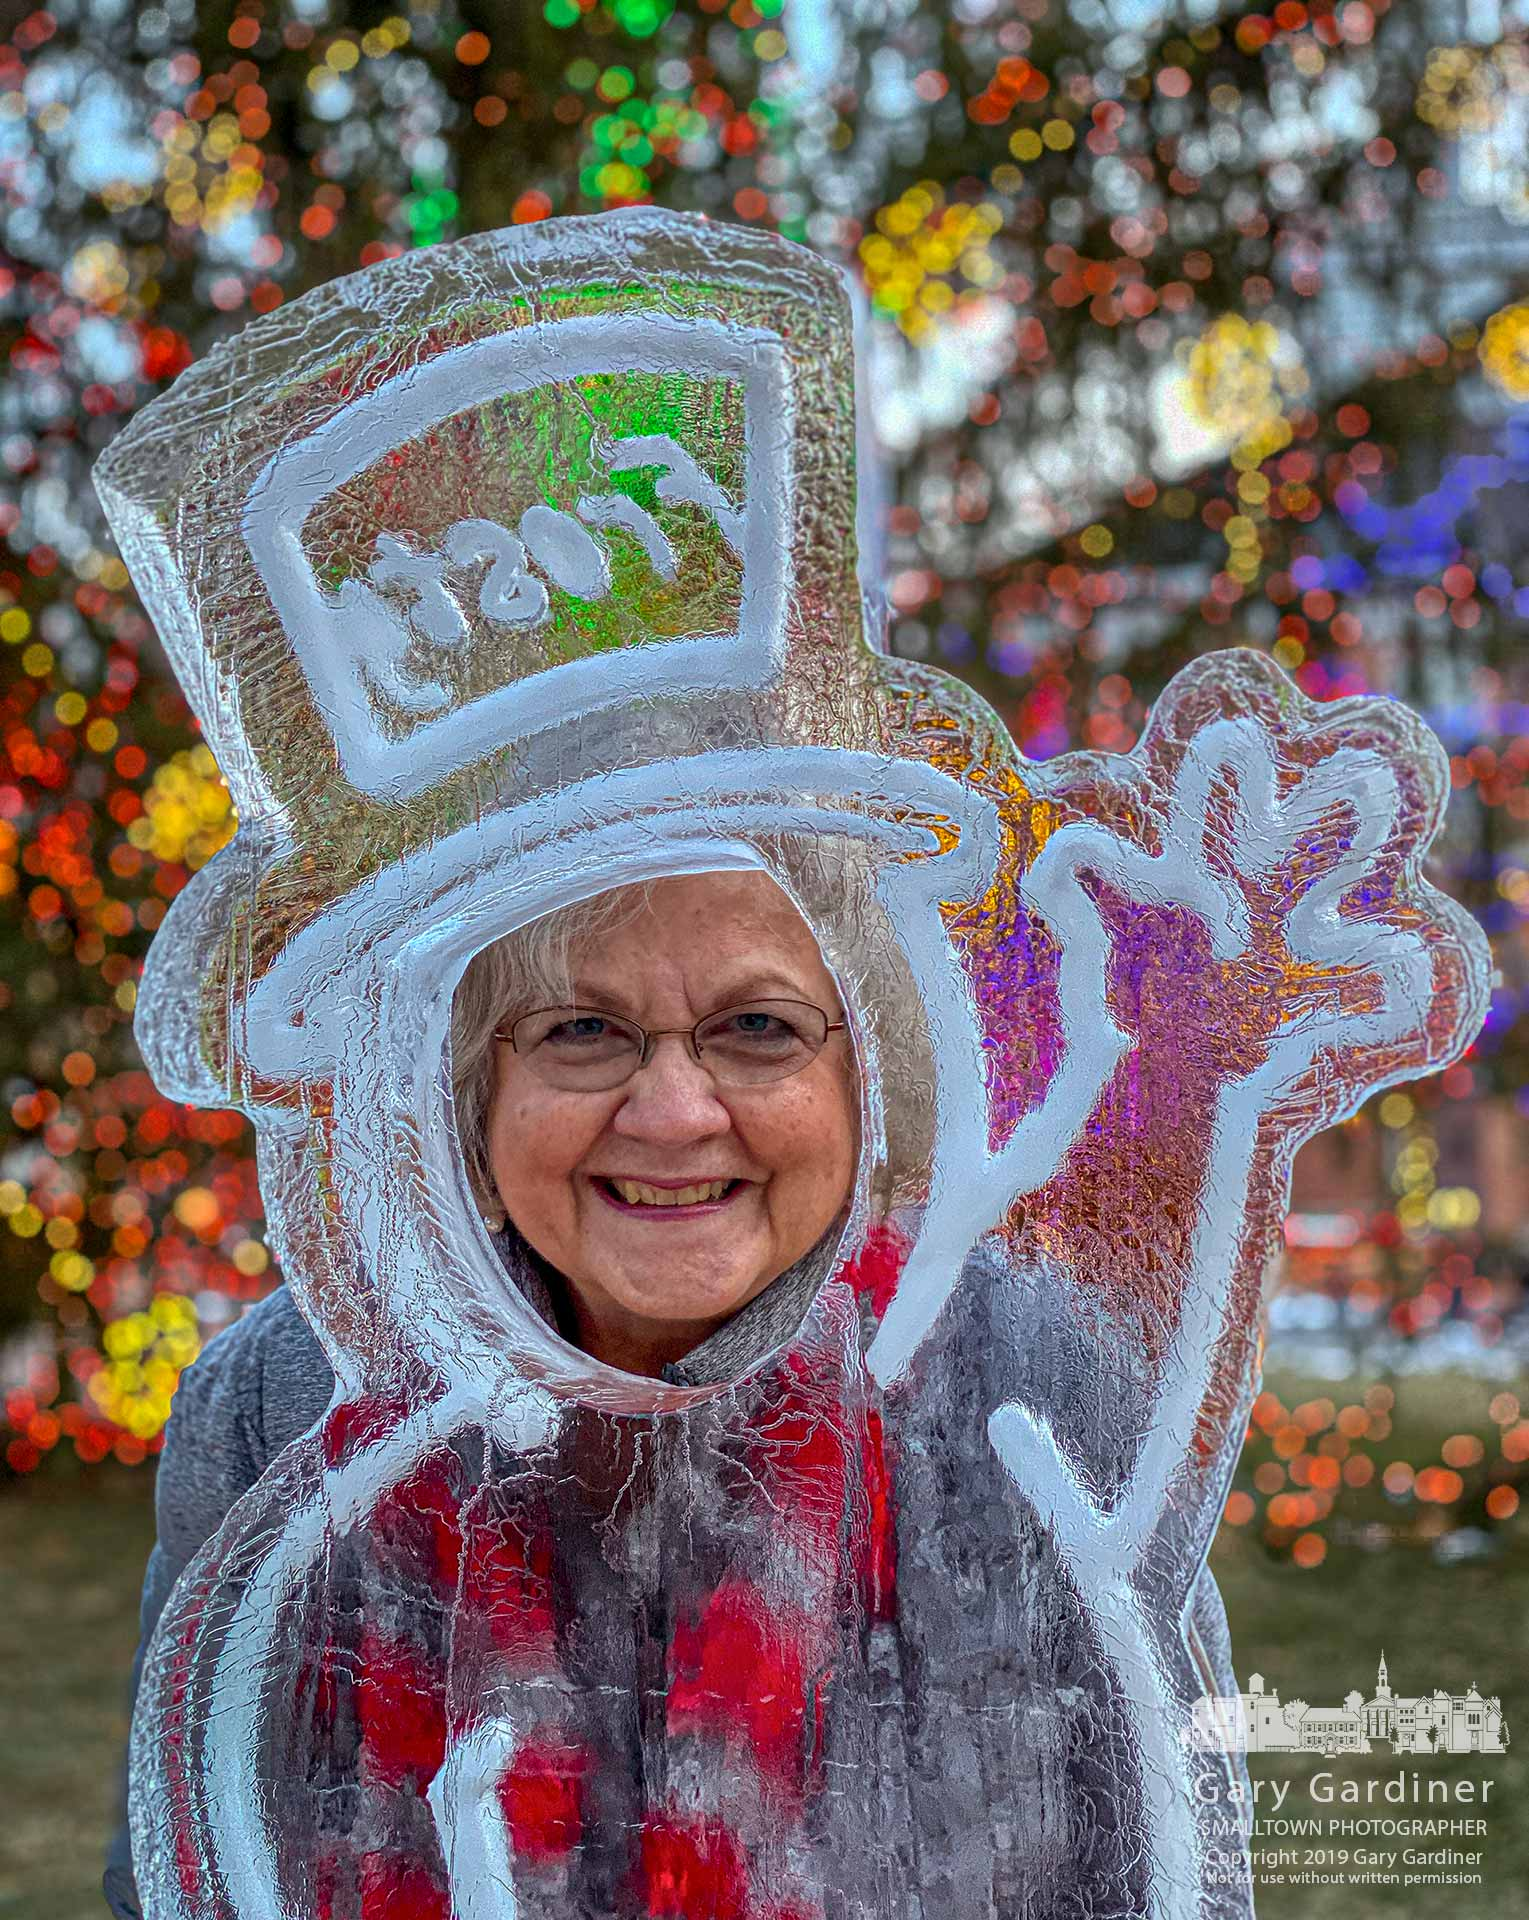 A woman poses with her face in the opening for Frosty the Snowman's ice sculpture in front of the Christmas tree in front of city hall in Uptown Westerville on the weekend before Christmas. My Final Photo for Dec. 20, 2019.